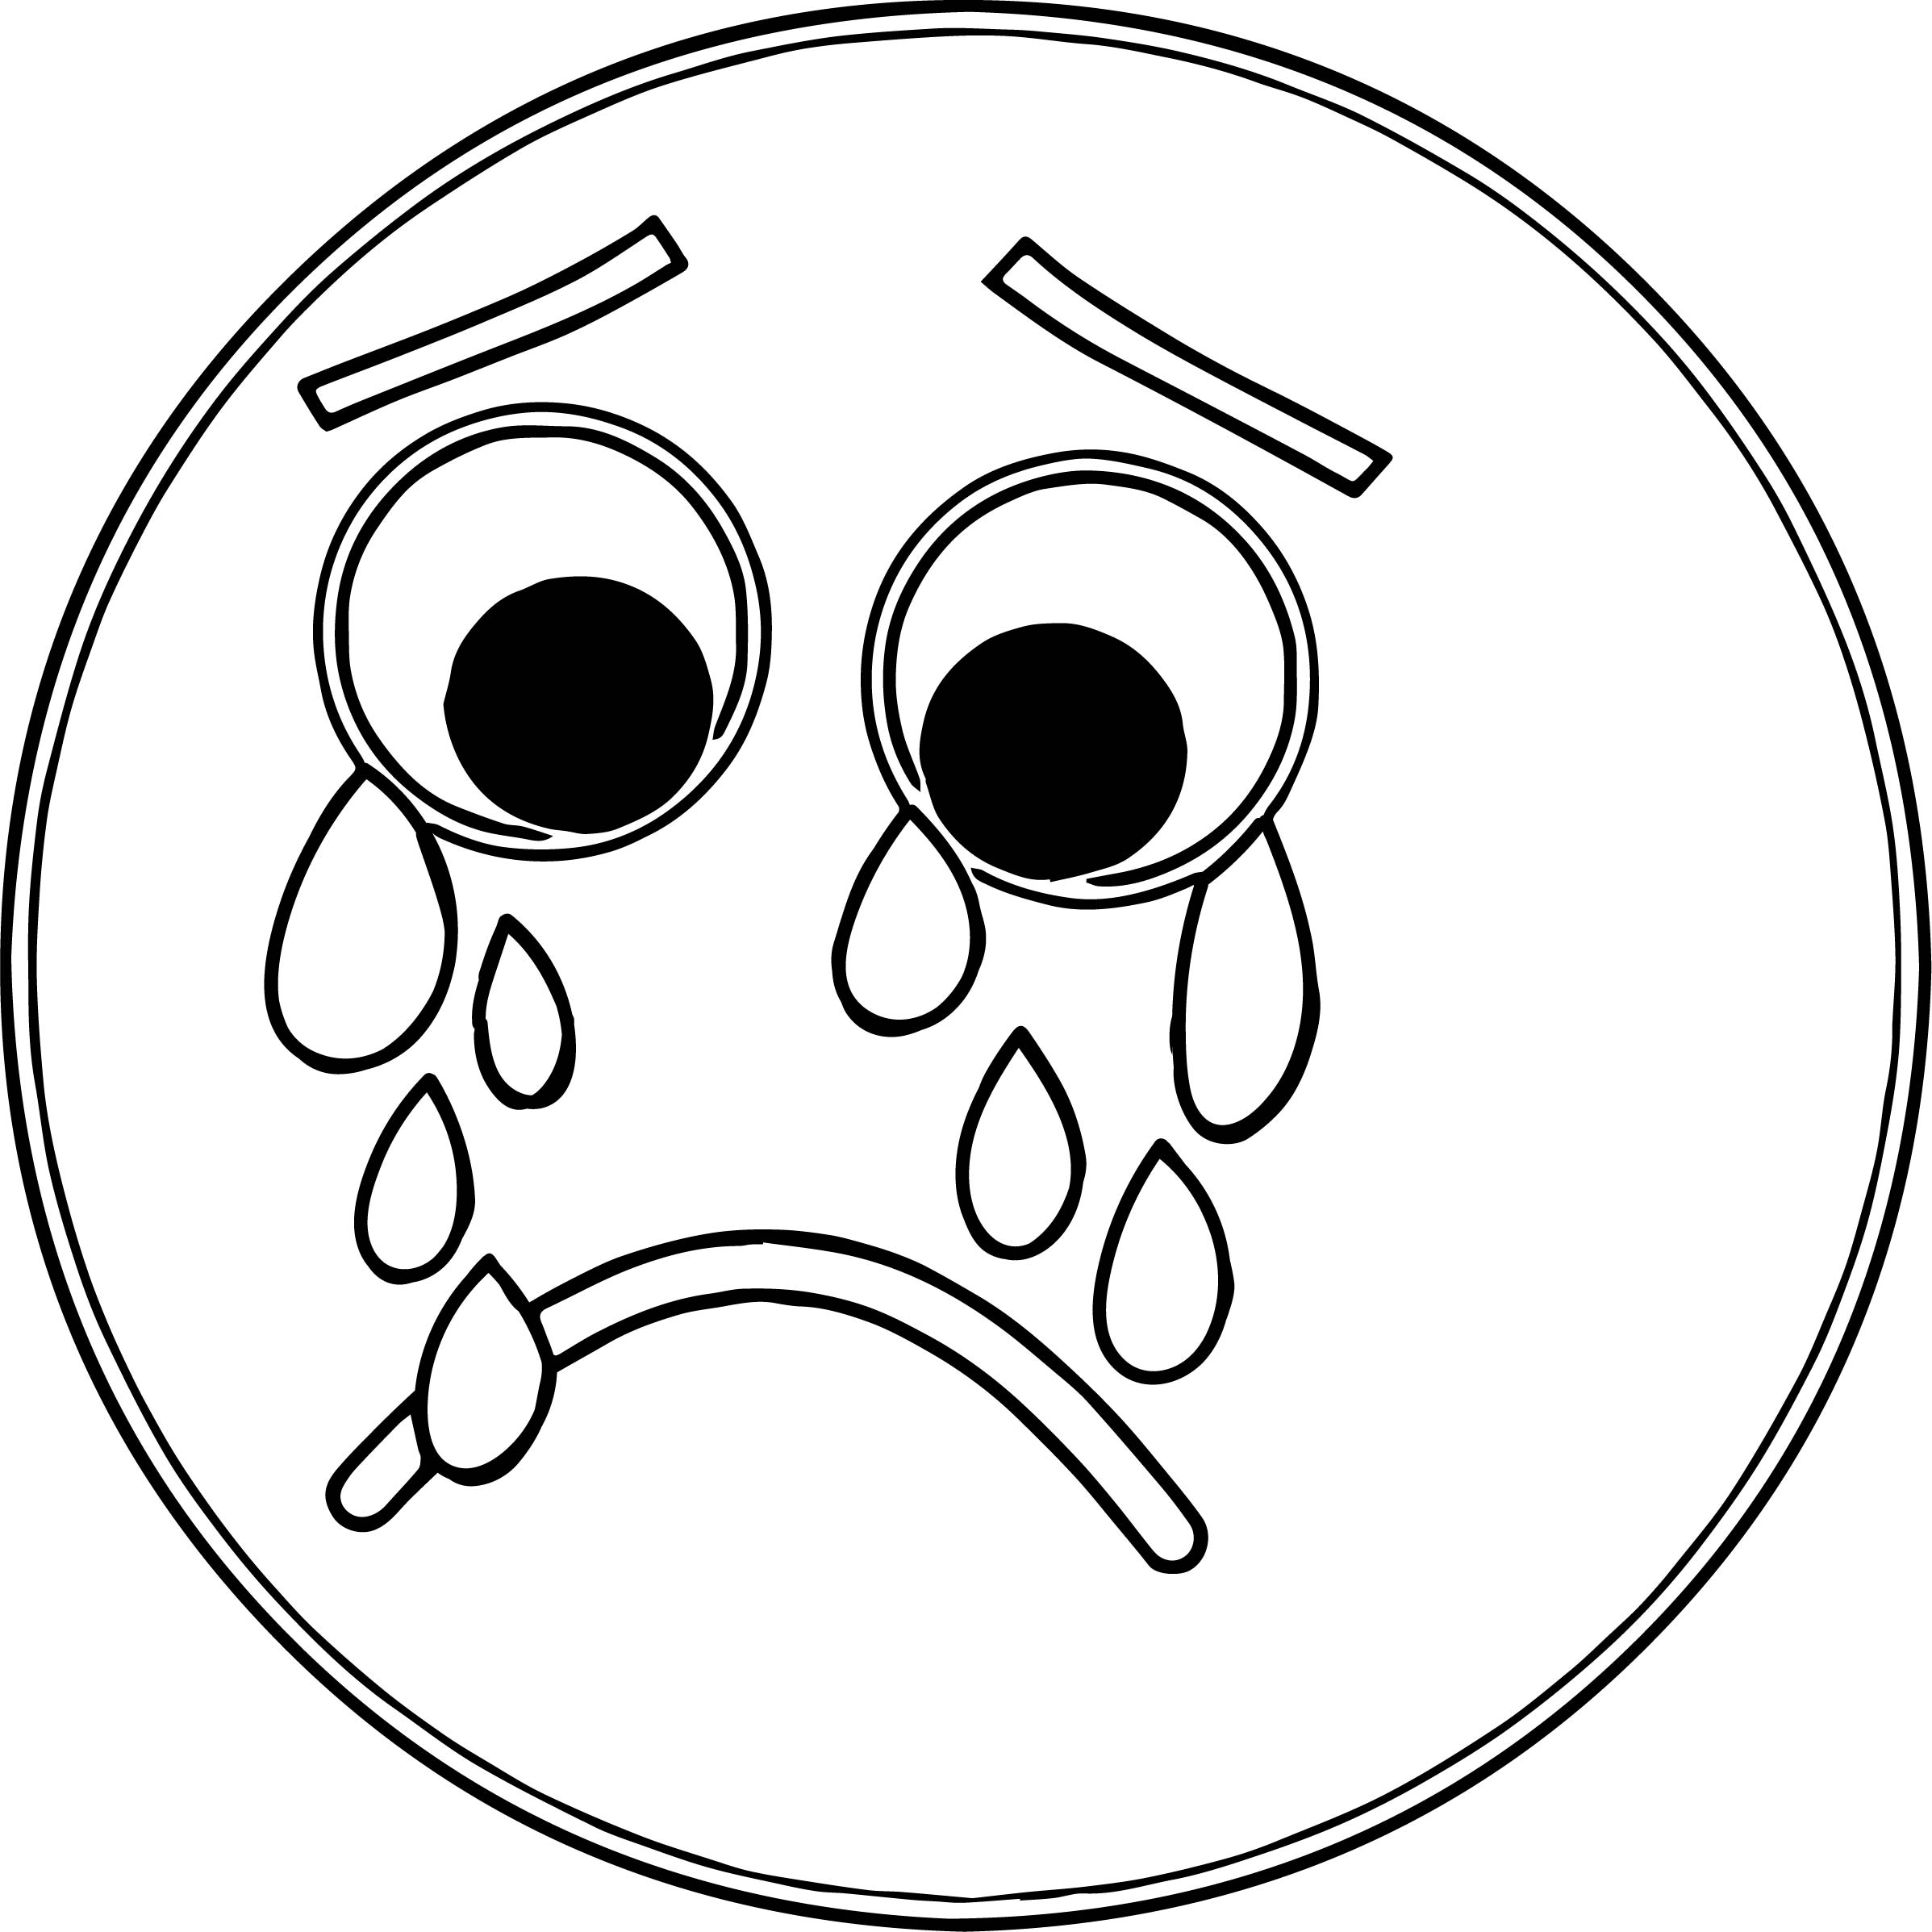 2395x2395 Printable Sad Face Coloring Page Free Coloring Pages Download